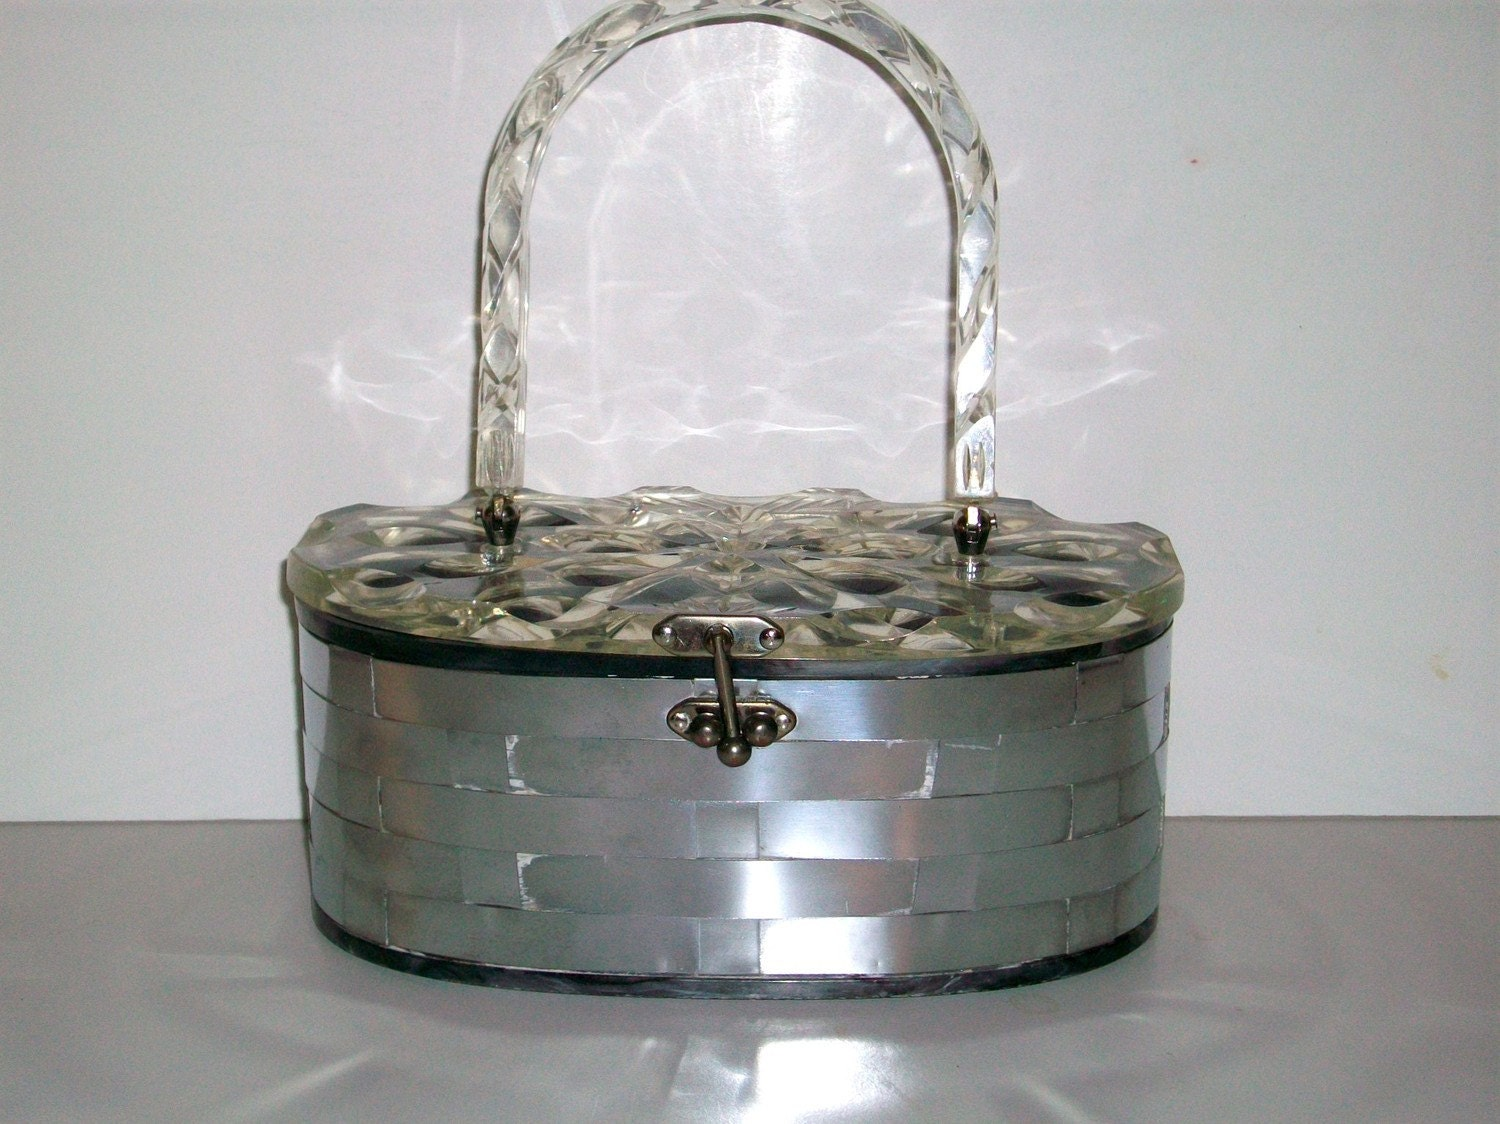 Vintage Handbag - Carved Lucite and Silver Basket  1950s